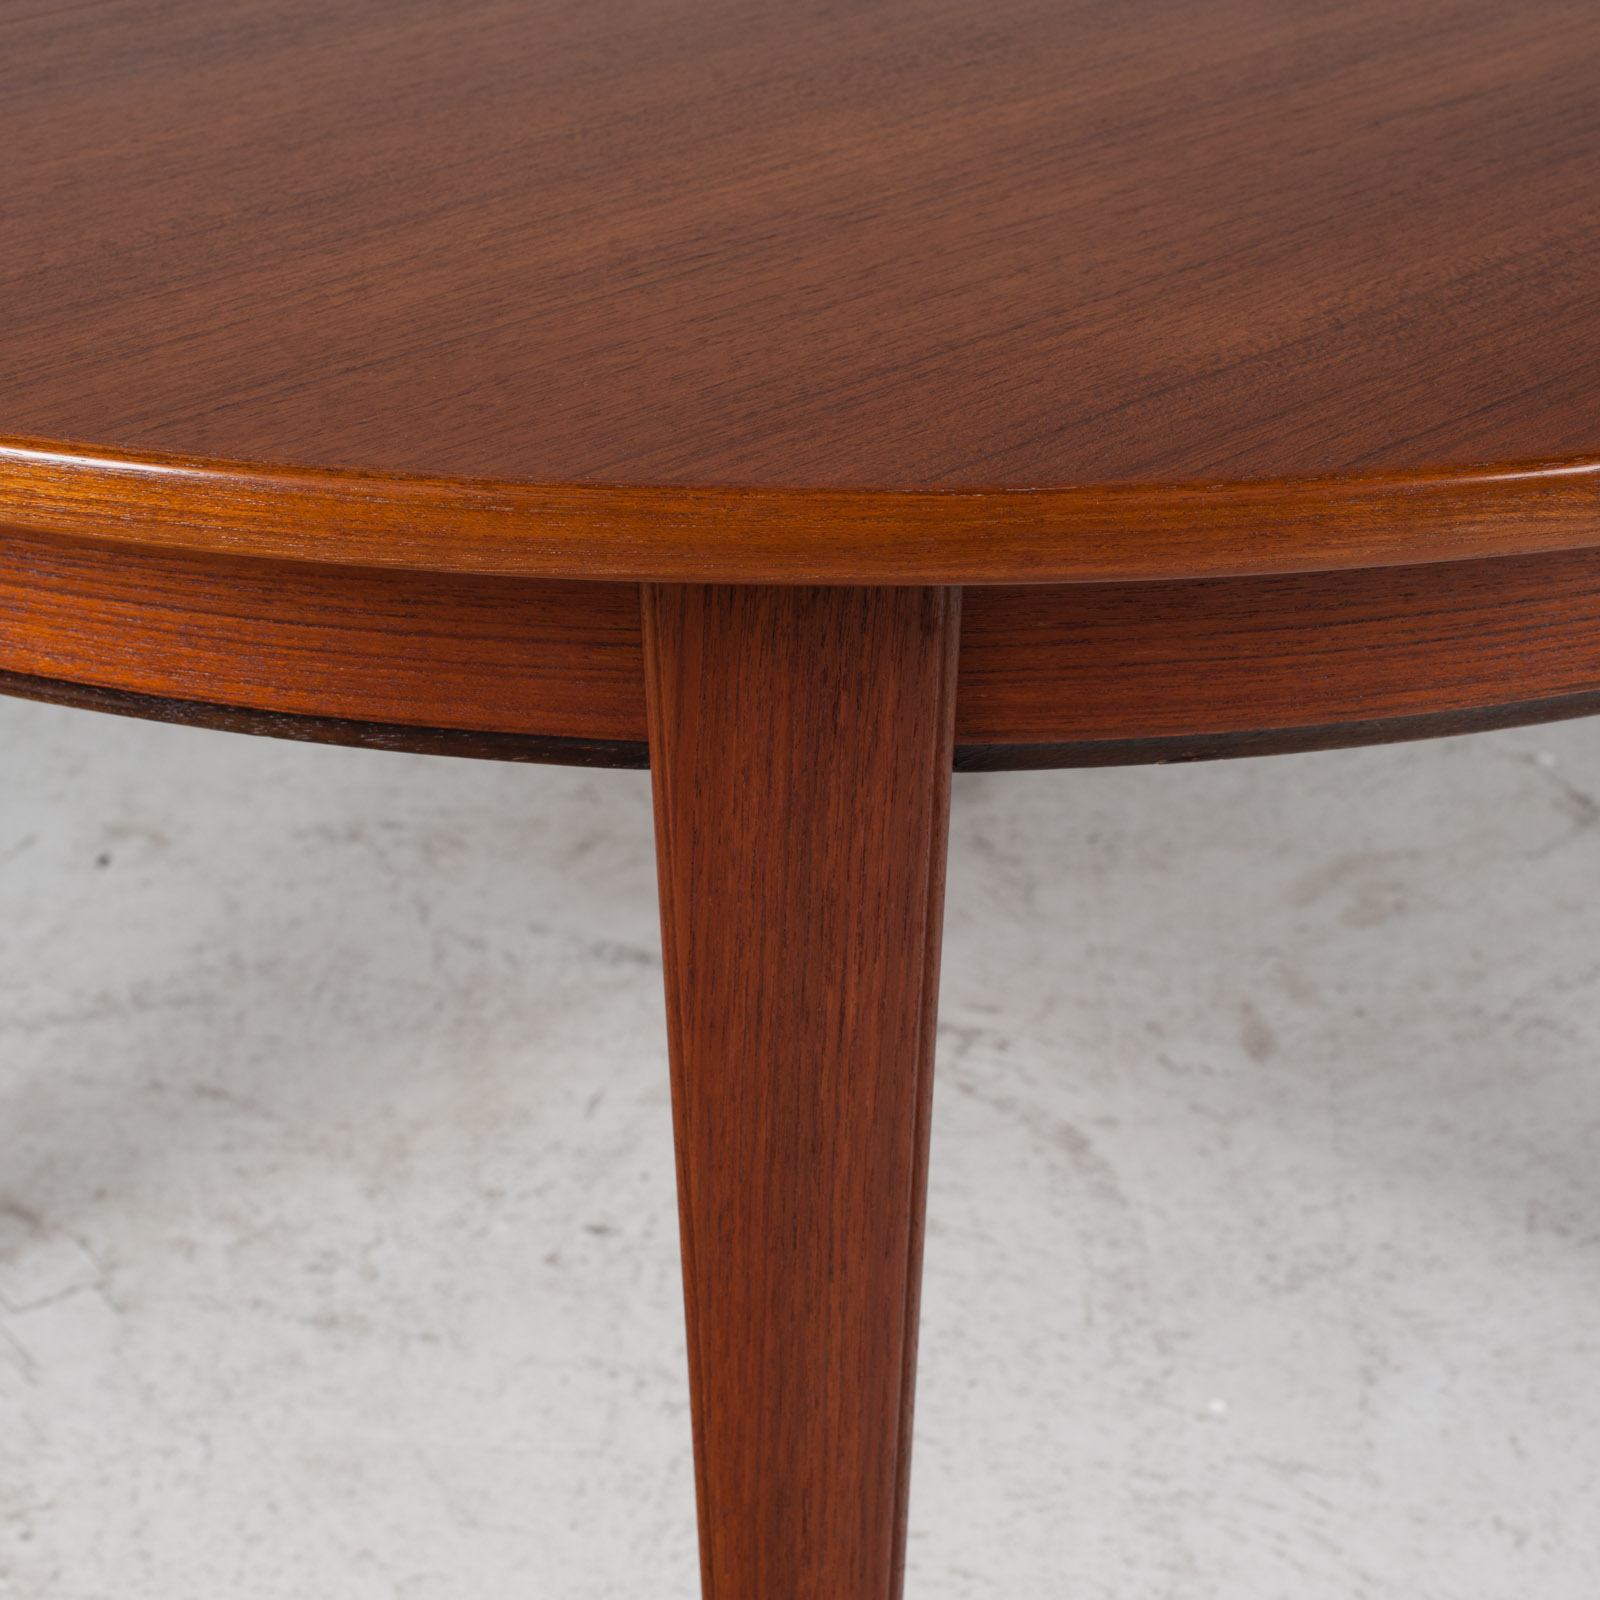 Round Dining Table By Omann Jun In Teak With Three Extensions 1960s Denmark 03